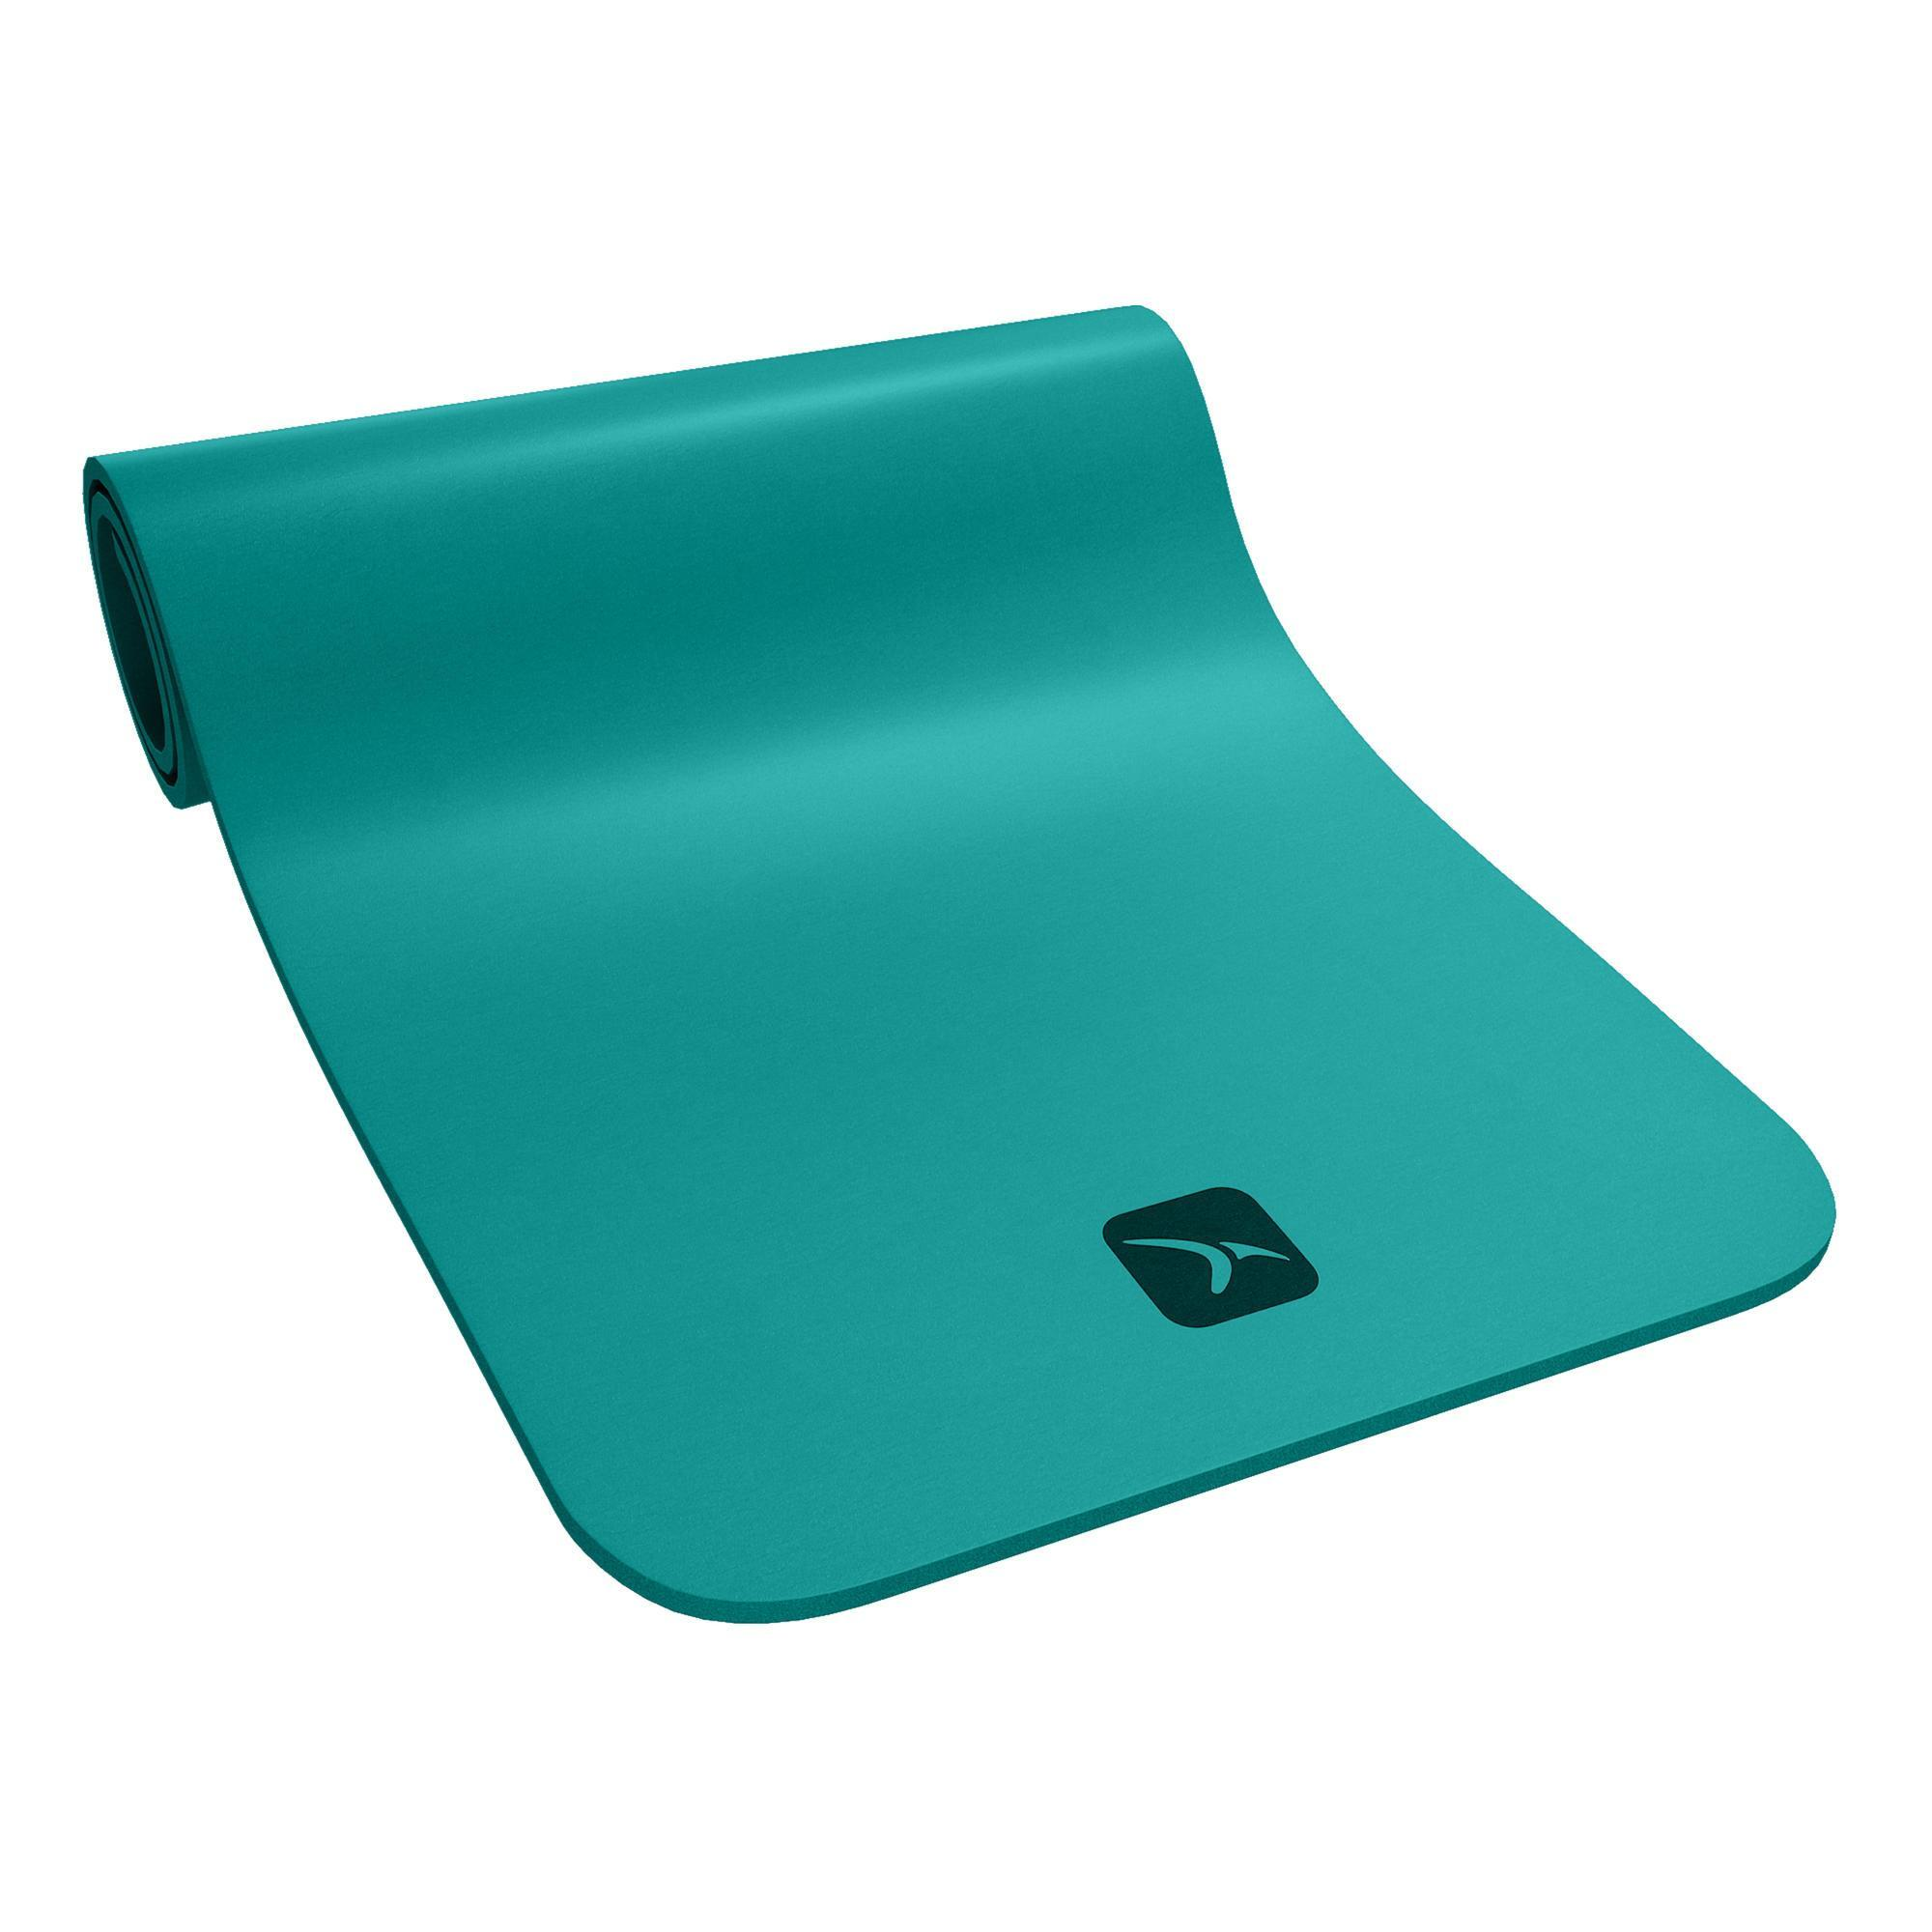 tapis de sol confort pilates vert domyos by decathlon. Black Bedroom Furniture Sets. Home Design Ideas